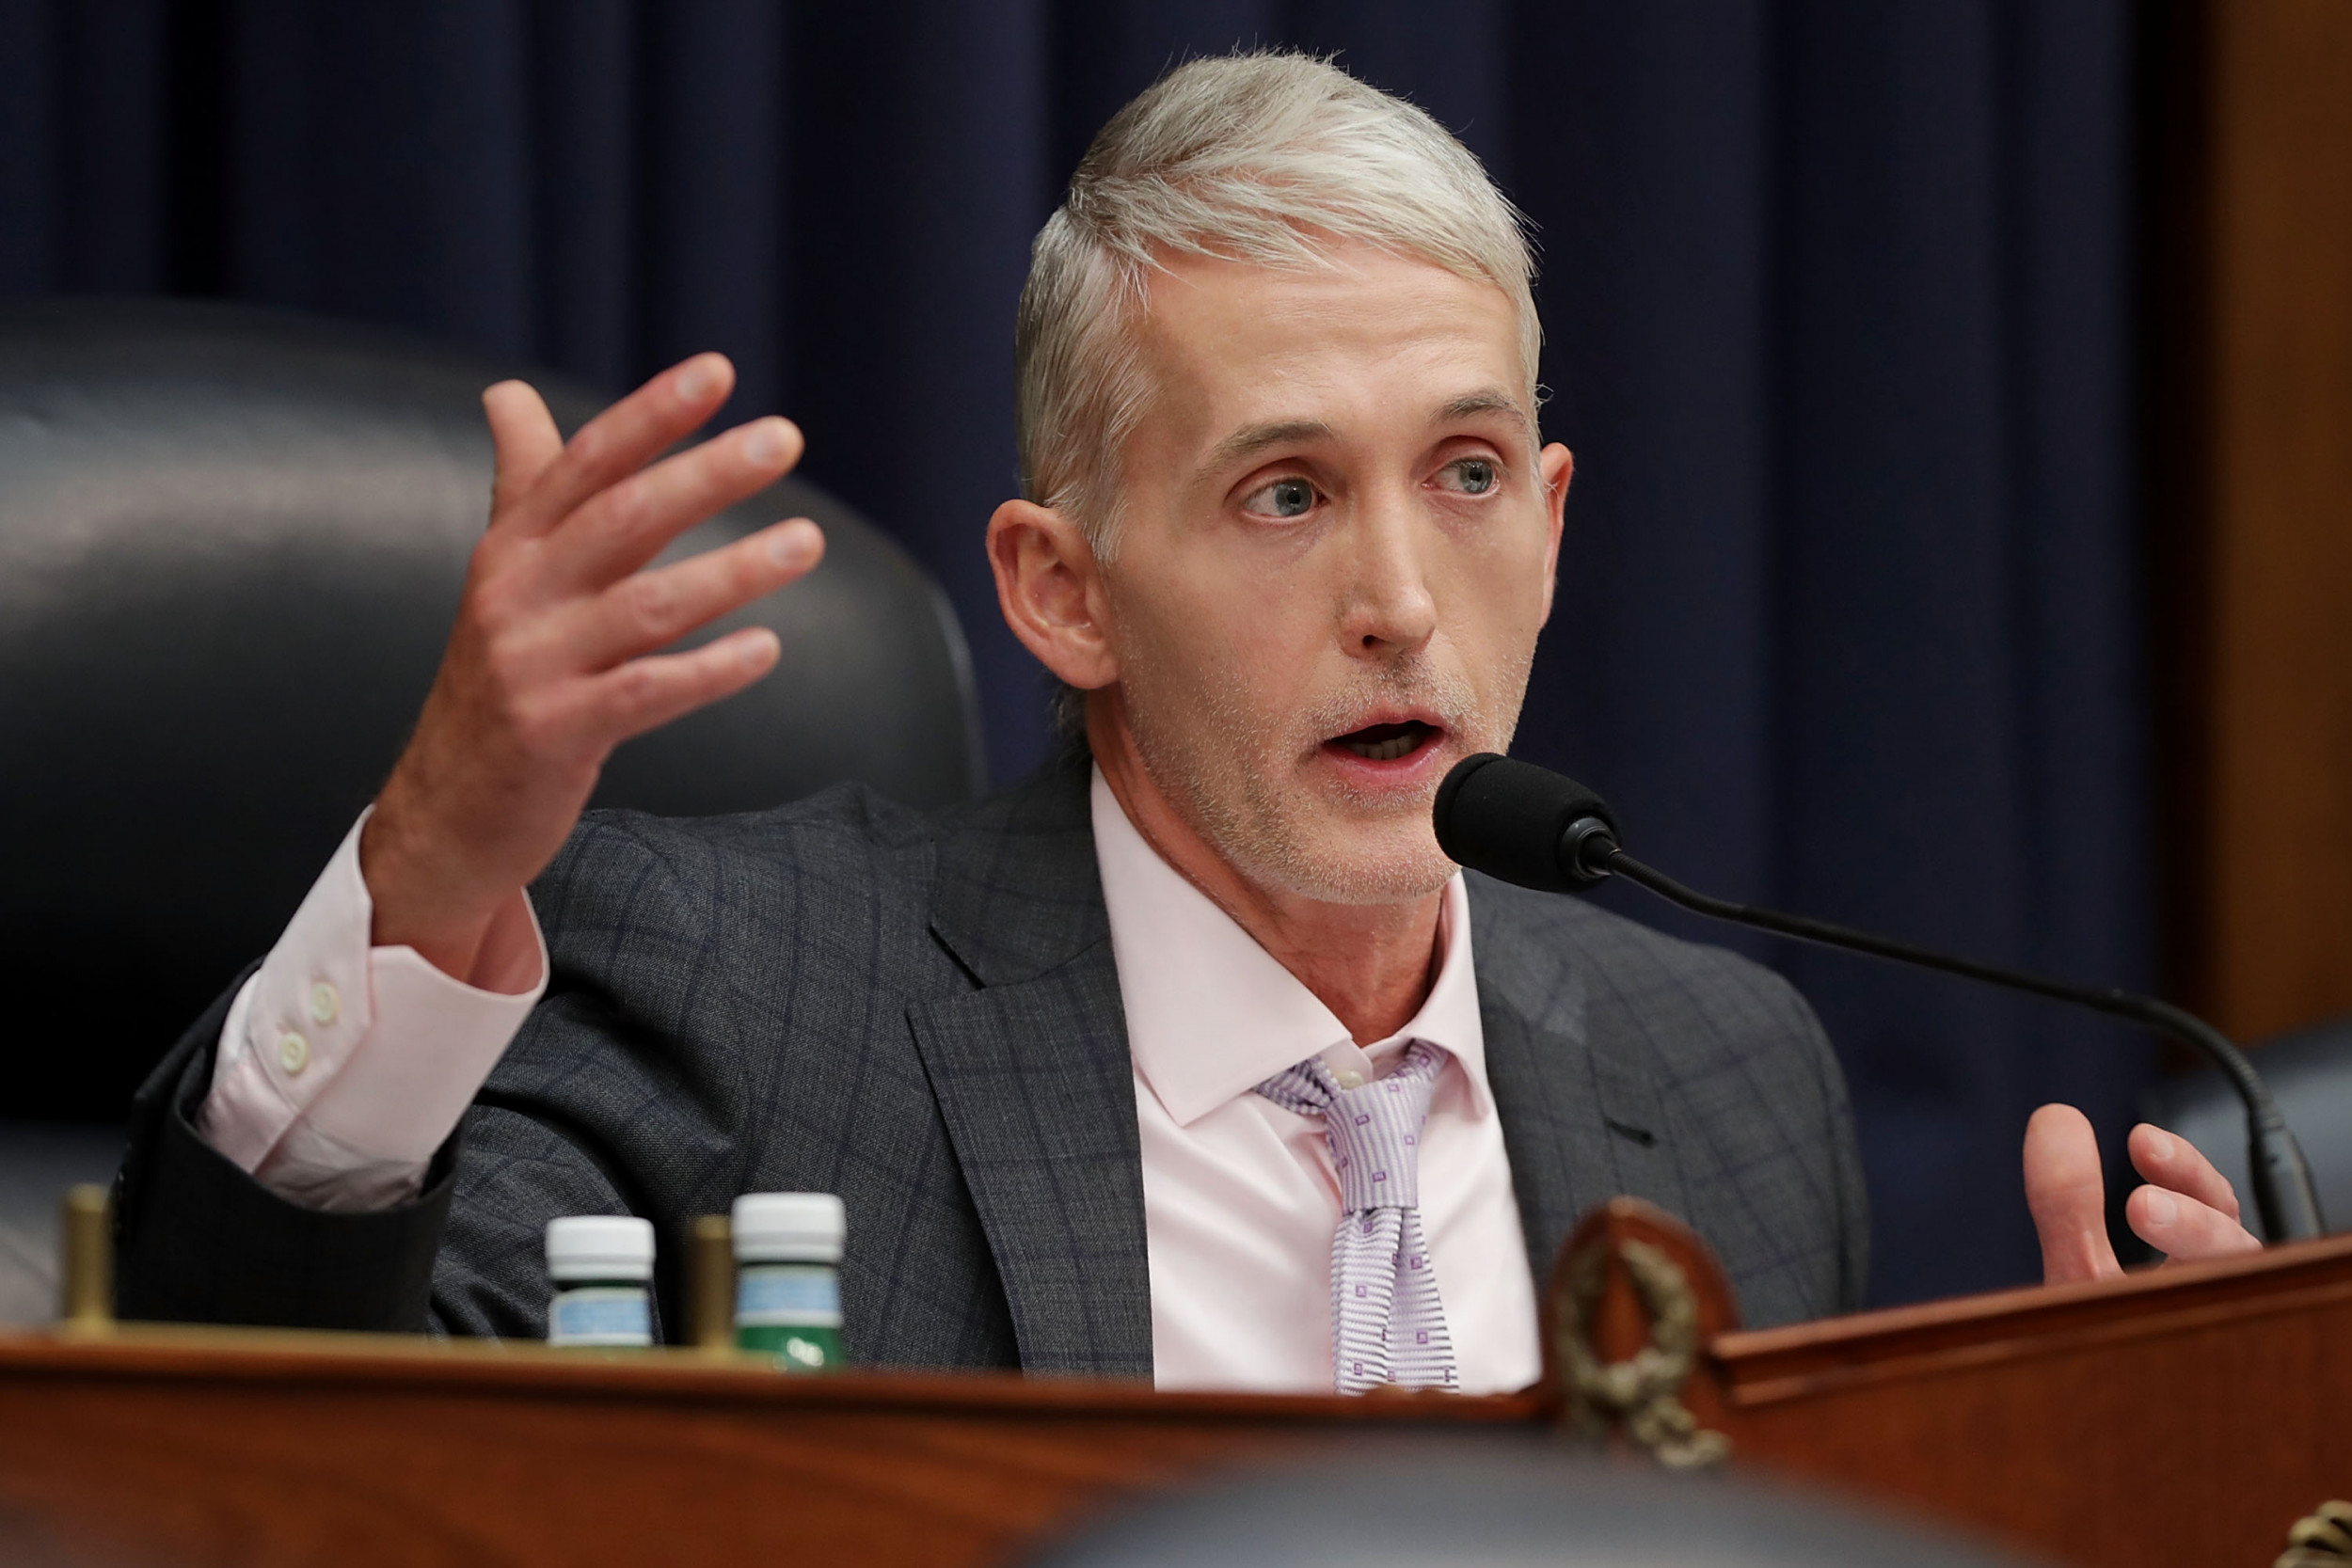 Clip of Trey Gowdy condemning Obama's refusal to turn over documents resurfaces amid Trump White House defense news